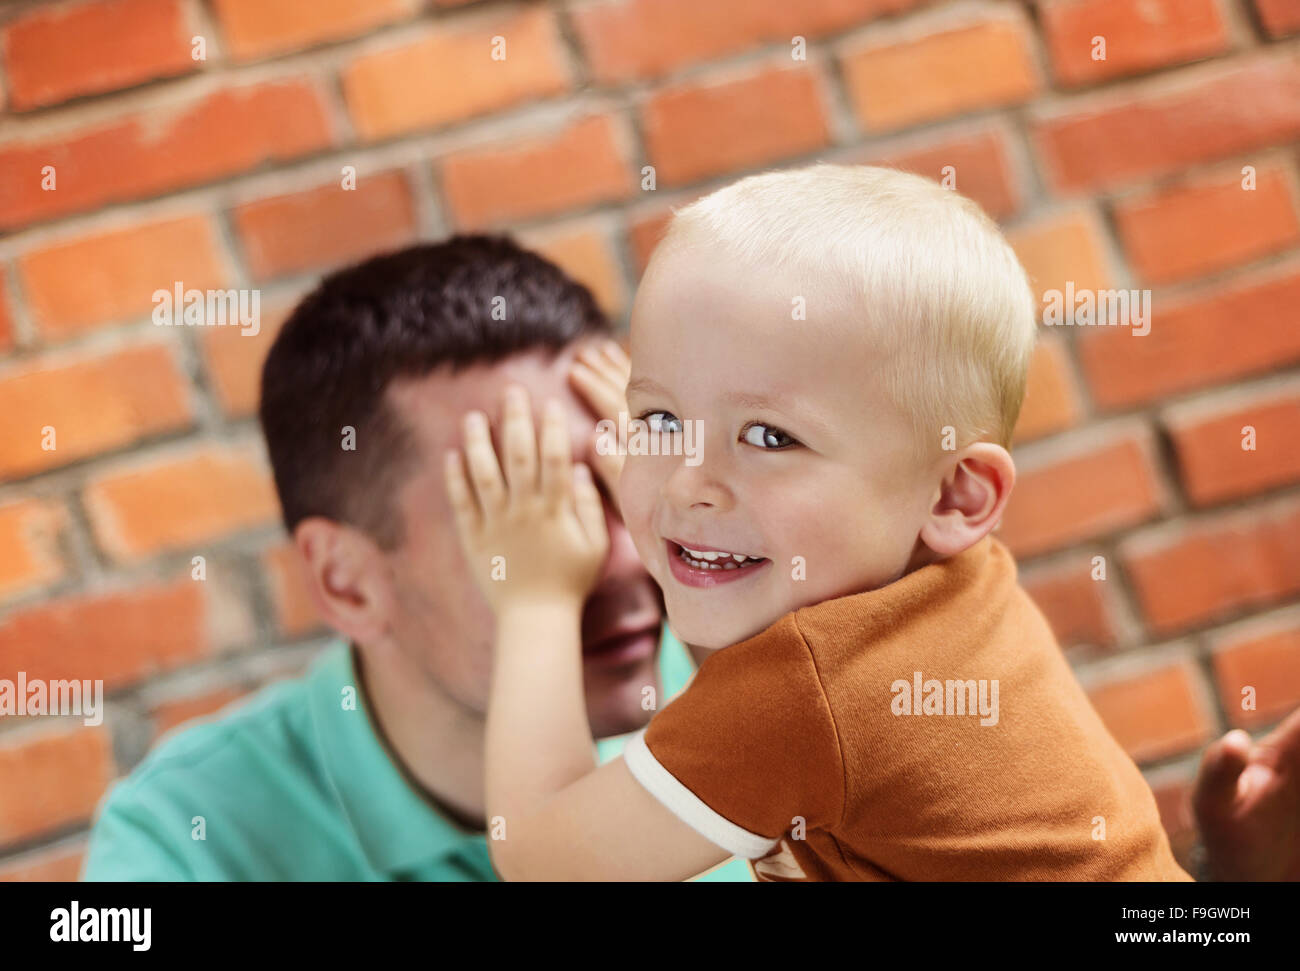 Father and son making funny faces together on a brick wall background - Stock Image